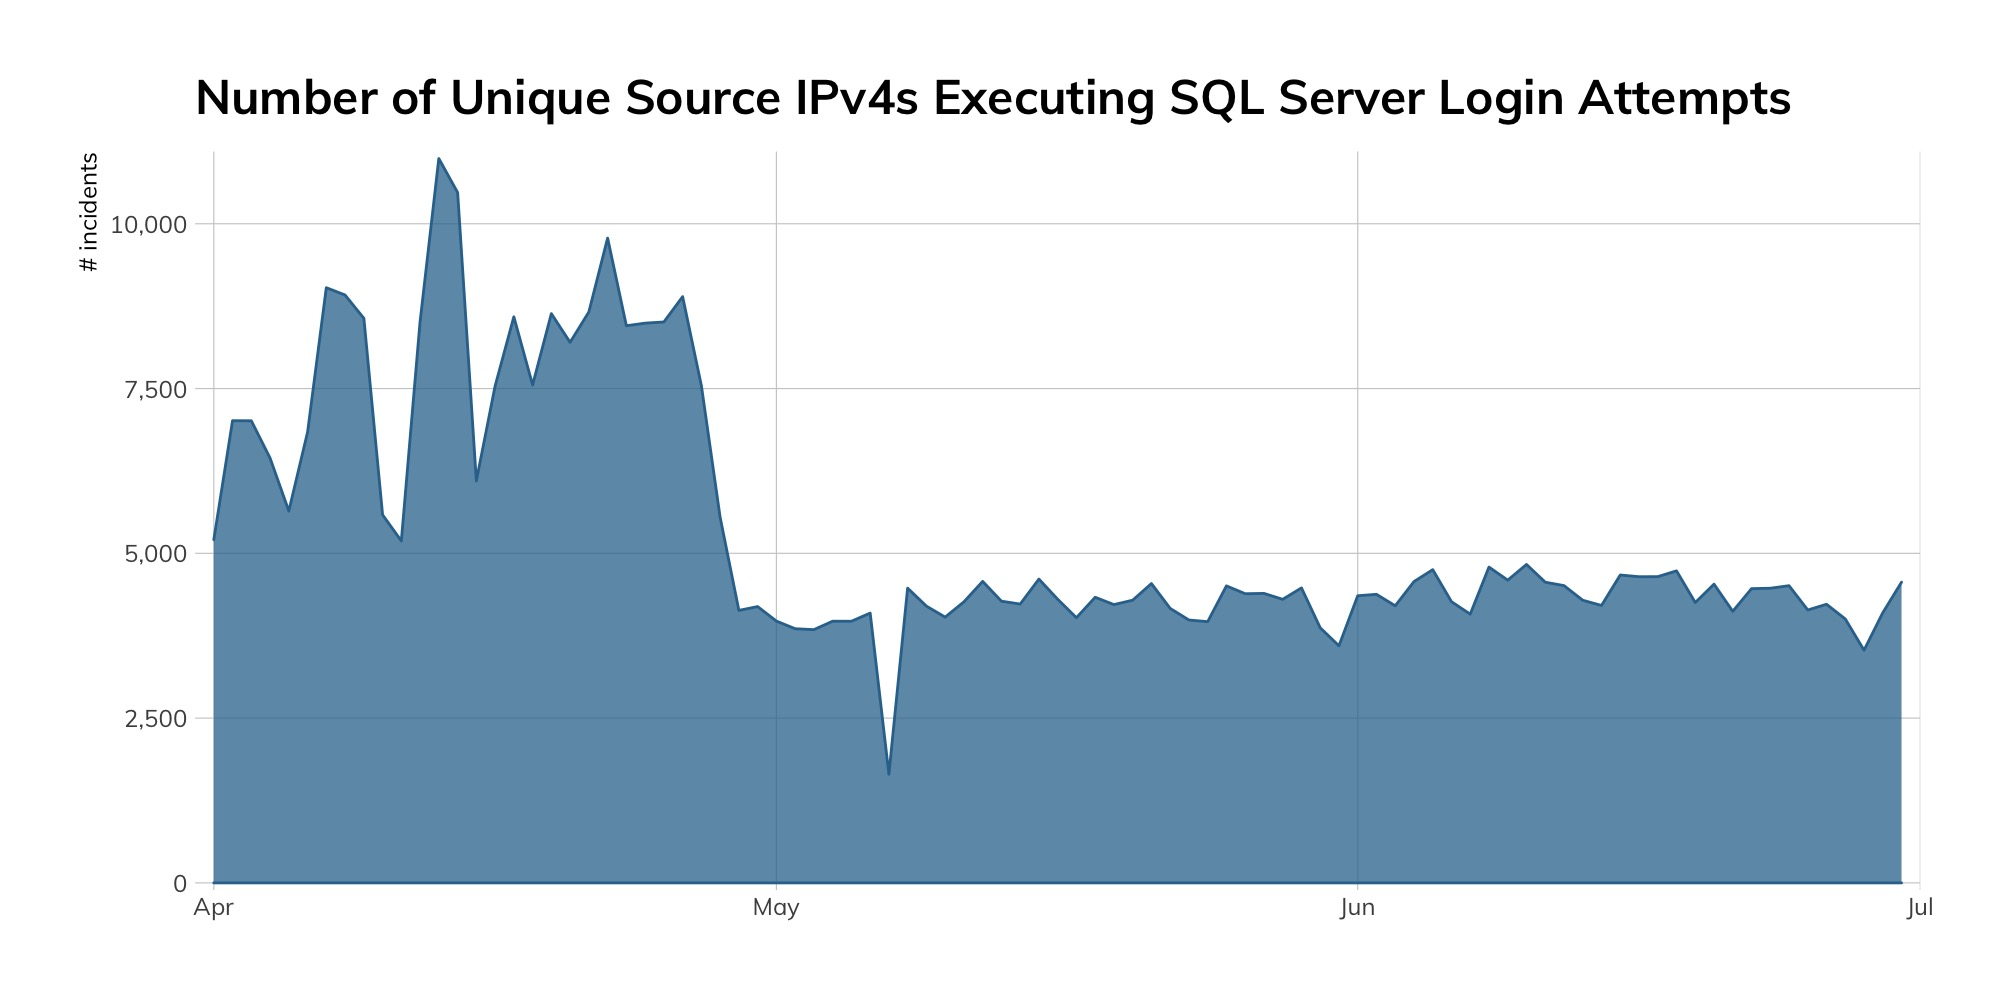 Figure 2: Number of Unique Source IPv4s Executing SQL Server Login Attempts